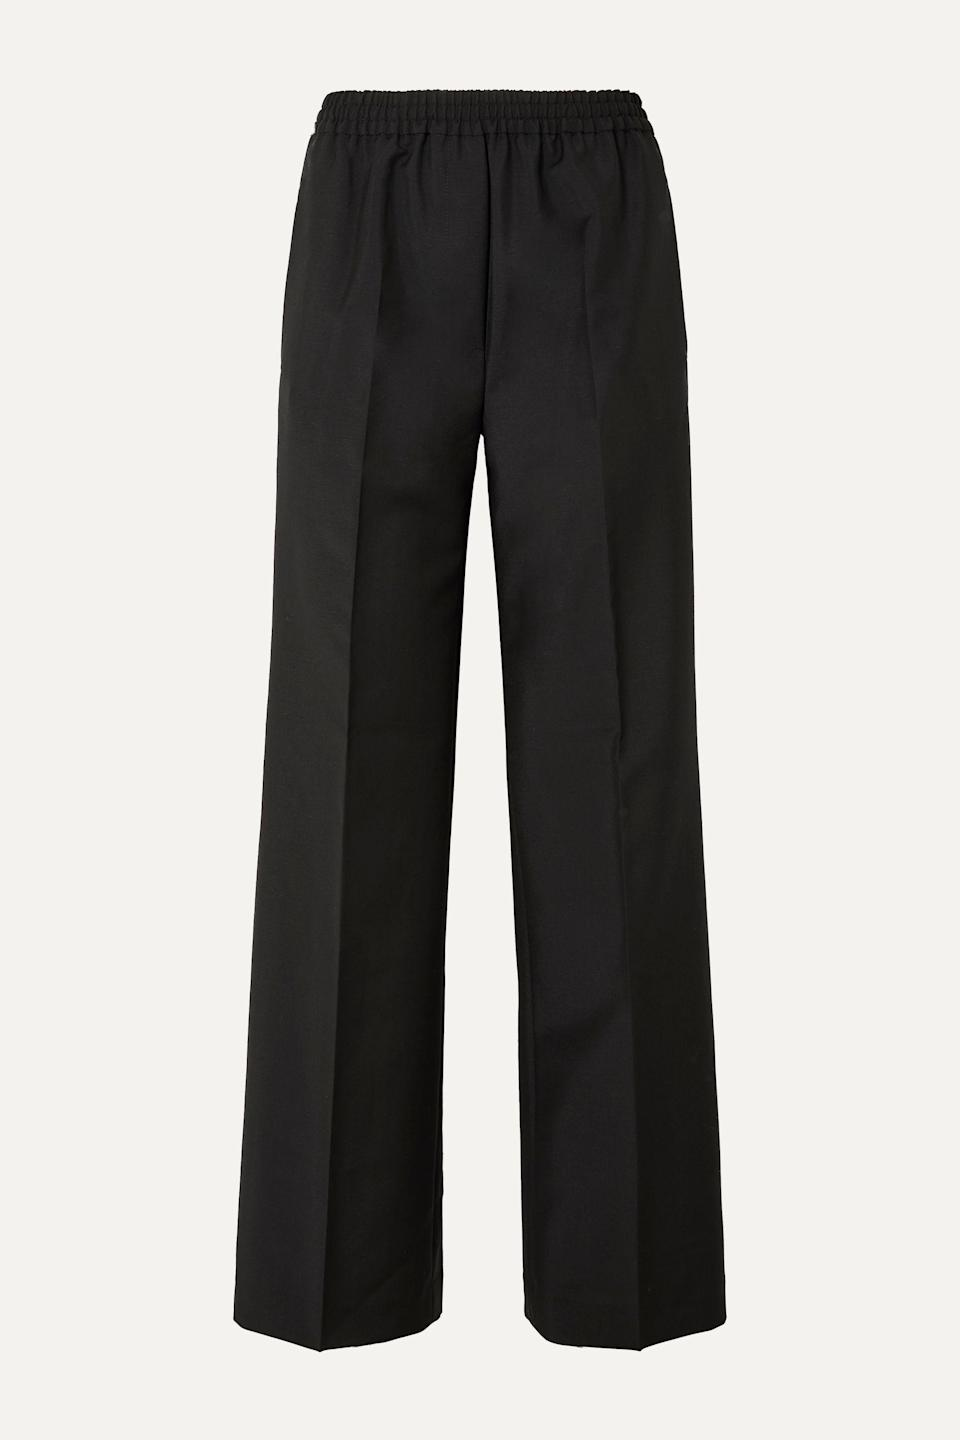 """<p><strong>Acne Studios</strong></p><p>net-a-porter.com</p><p><strong>$245.00</strong></p><p><a href=""""https://go.redirectingat.com?id=74968X1596630&url=https%3A%2F%2Fwww.net-a-porter.com%2Fen-us%2Fshop%2Fproduct%2Facne-studios%2Fpammy-wool-and-mohair-blend-wide-leg-pants%2F1161831&sref=https%3A%2F%2Fwww.harpersbazaar.com%2Ffashion%2Fstreet-style%2Fg7872%2Ffall-autumn-outfits%2F"""" rel=""""nofollow noopener"""" target=""""_blank"""" data-ylk=""""slk:Shop Now"""" class=""""link rapid-noclick-resp"""">Shop Now</a></p><p>There's never a shortage of black trousers to own; they always come in handy. Made from a luxe blend of wool and mohair, Acne's iteration are both casual and elegant with its pressed creases and elastic waistband. </p>"""